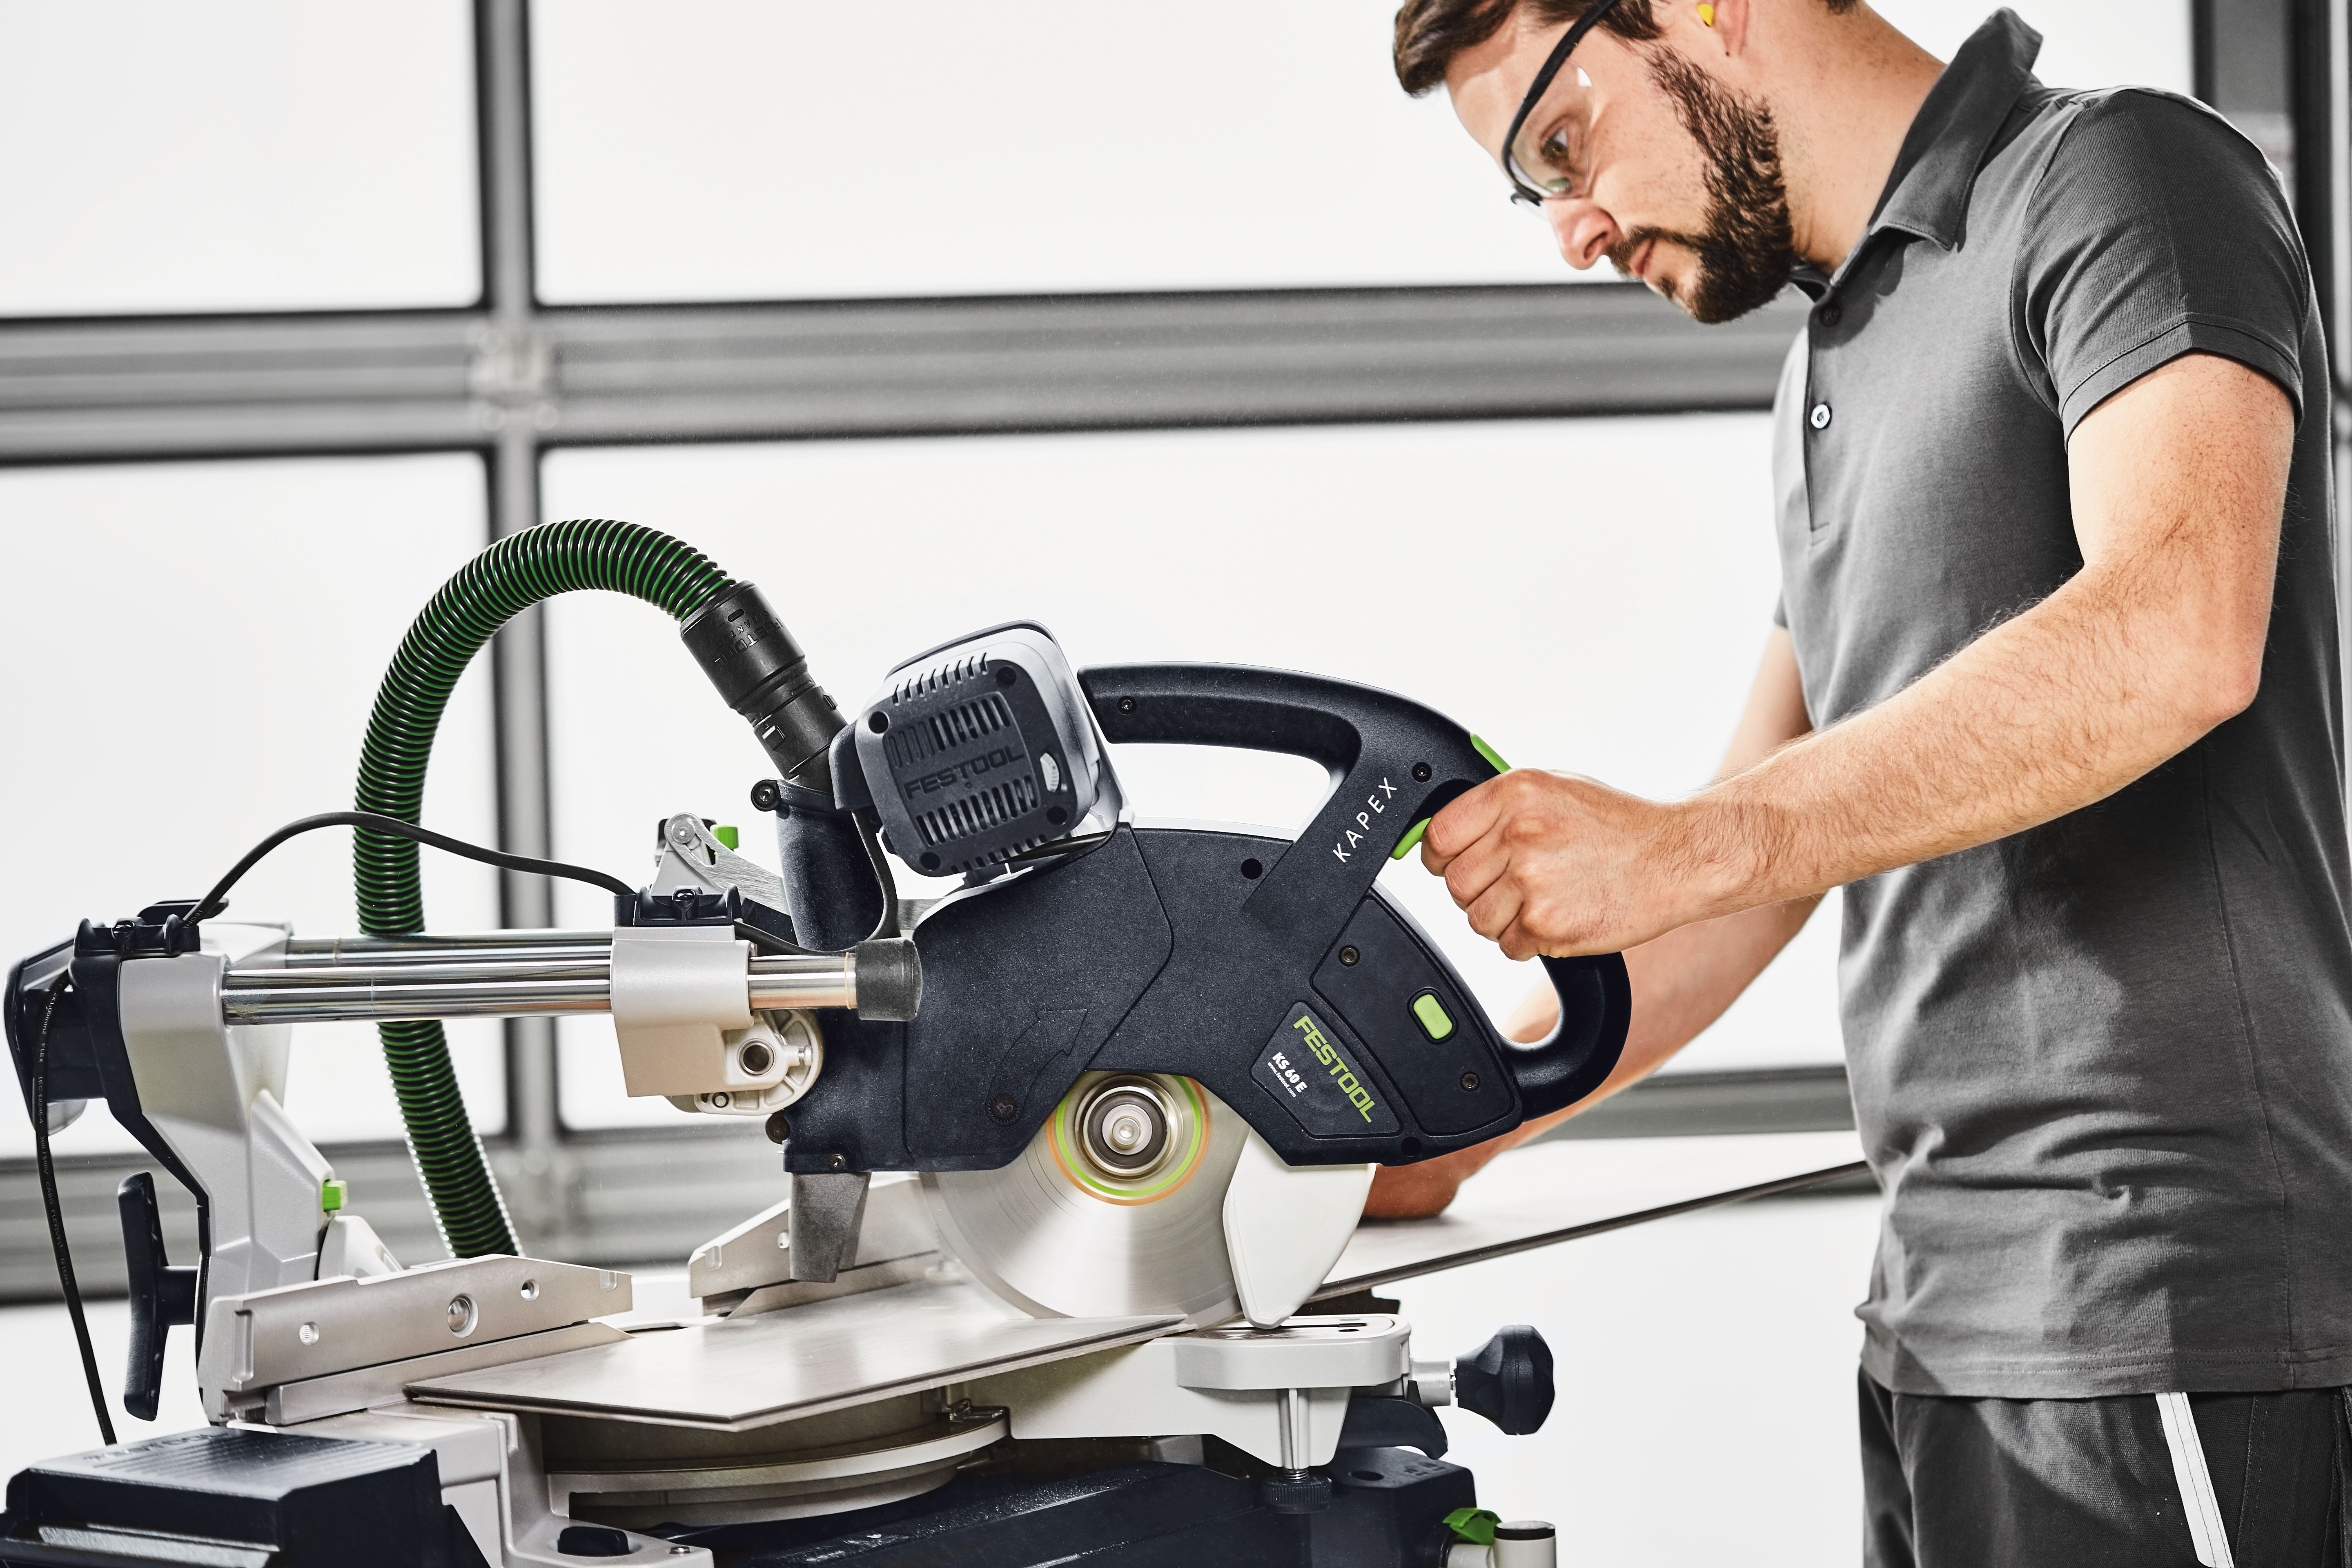 561728_festool_ks60set_02